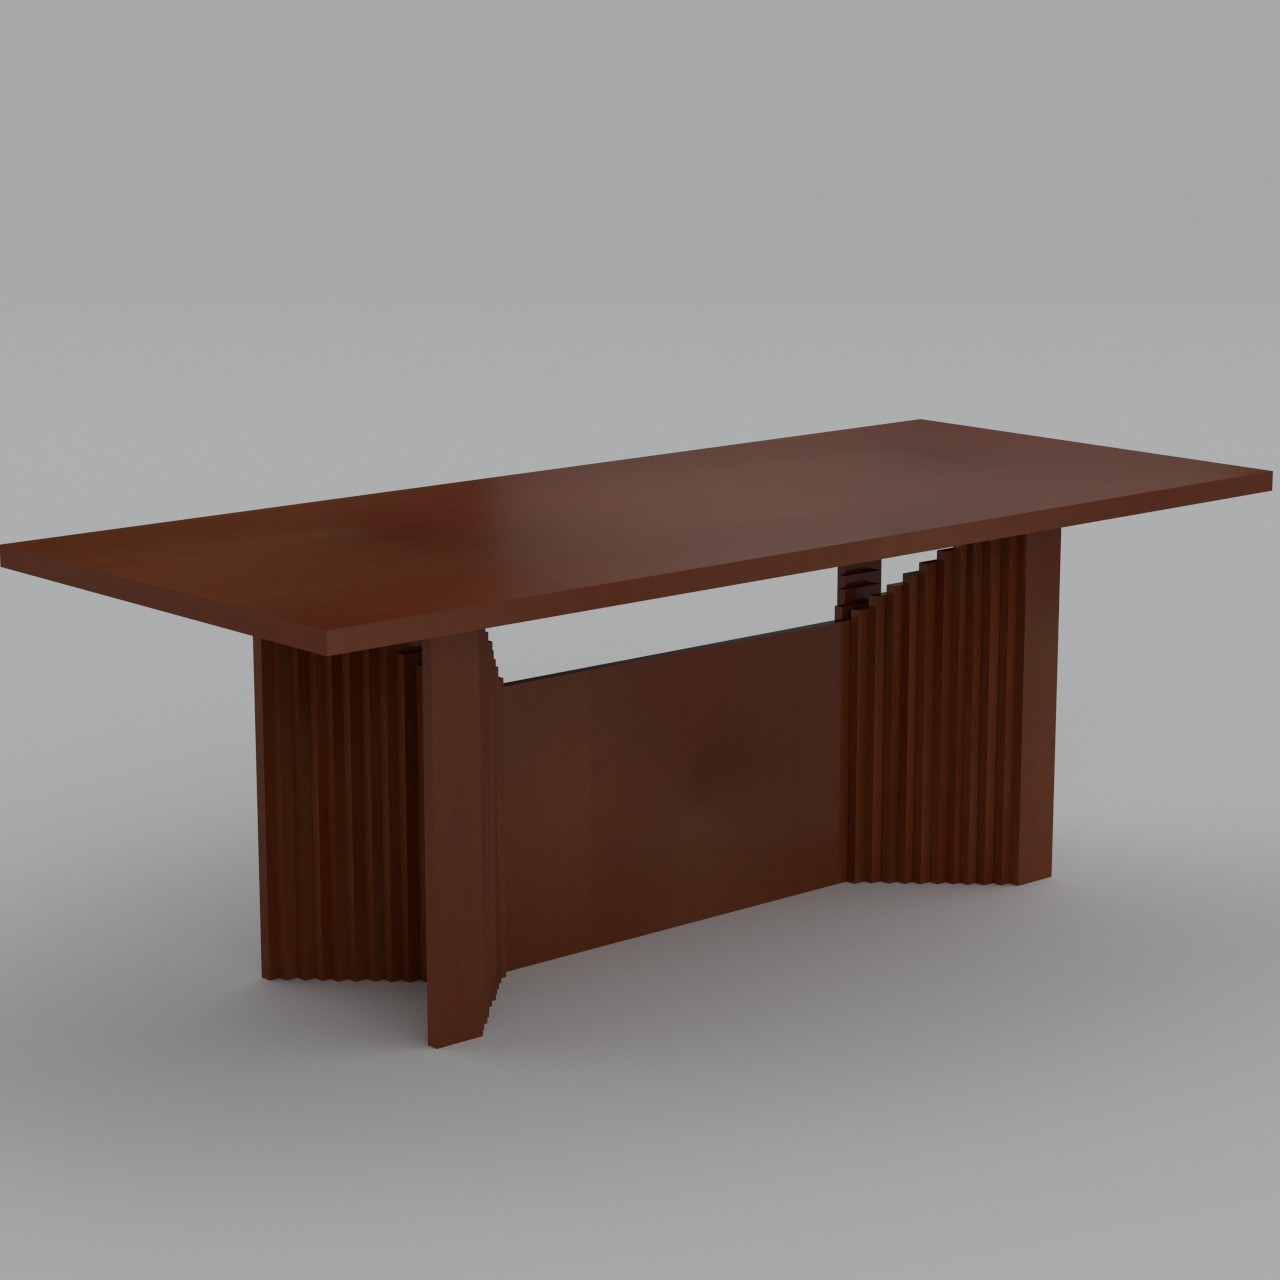 Wooden table uv unwrapped 3d max for Table 52 2015